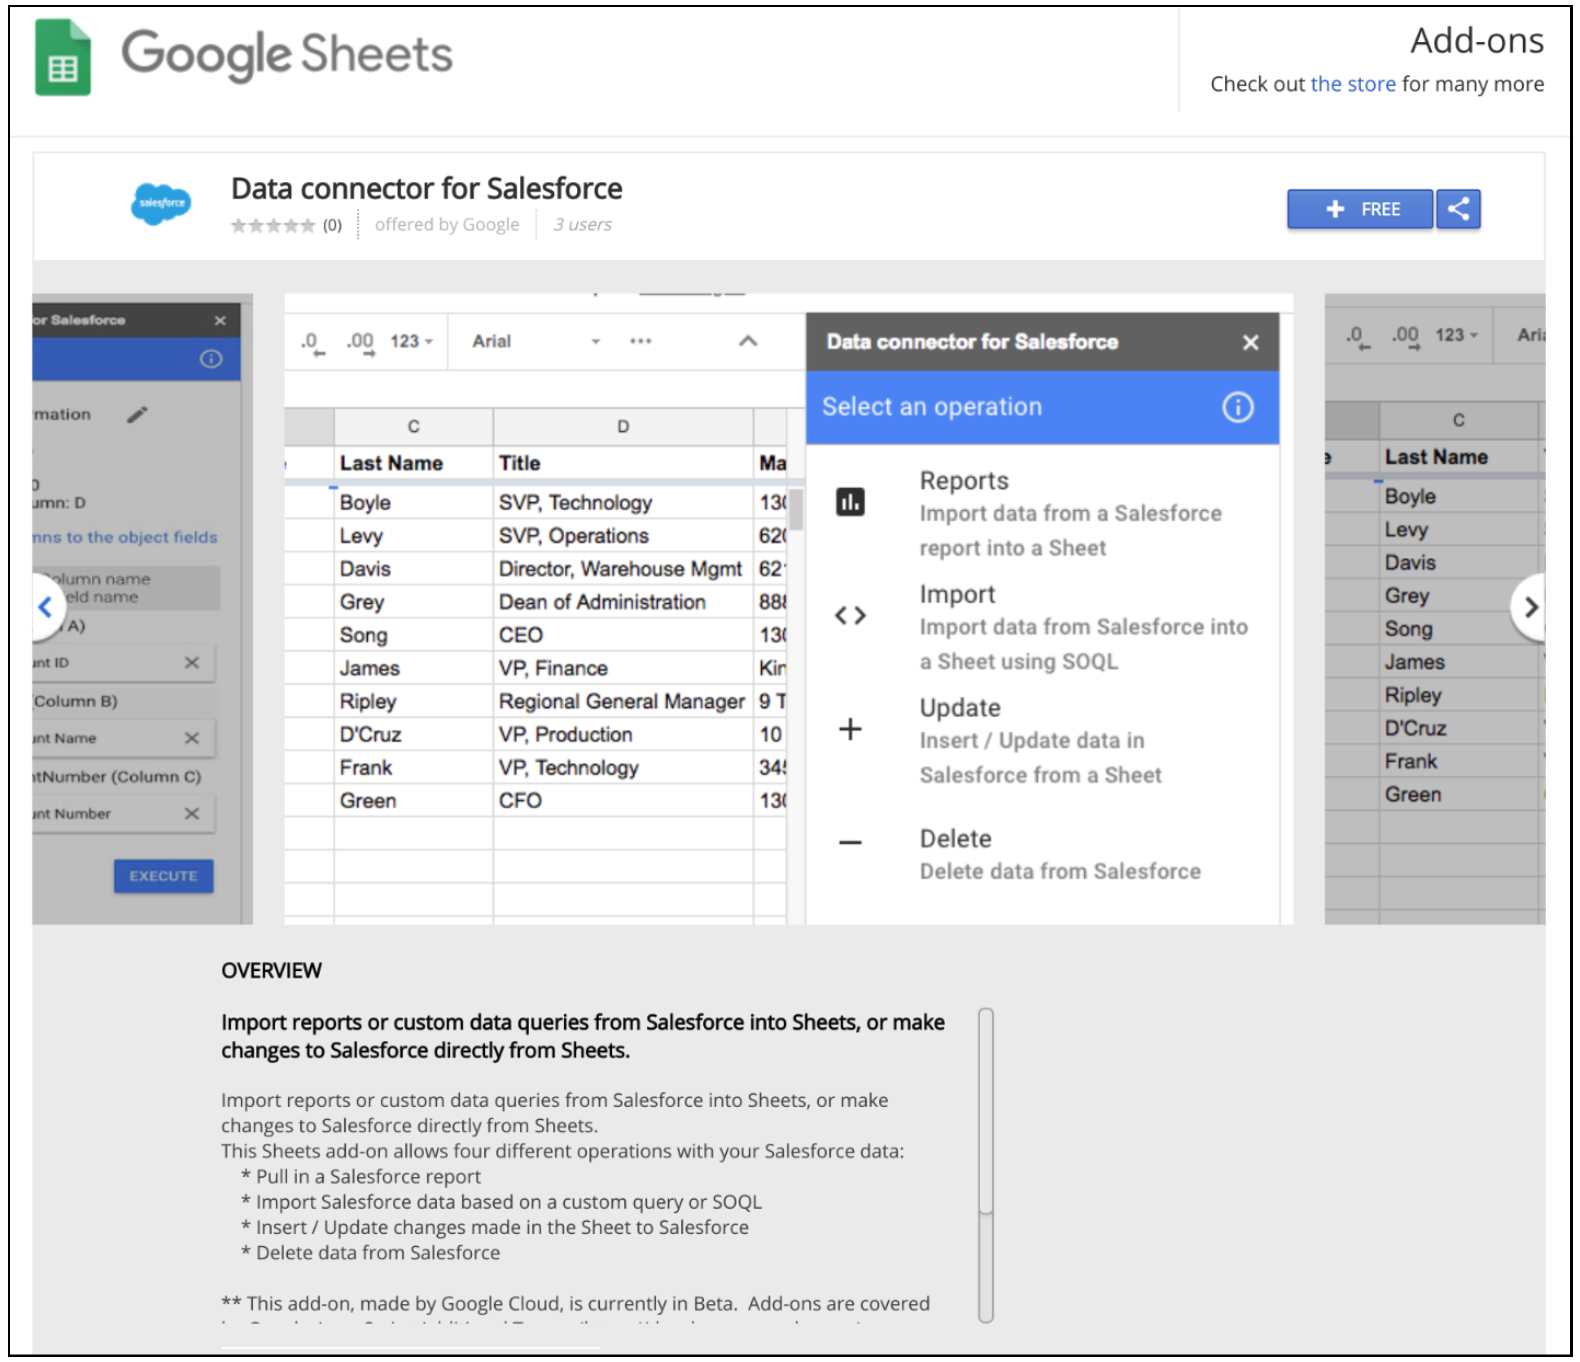 G Suite Updates Blog: Easily connect with Salesforce from Google Sheets